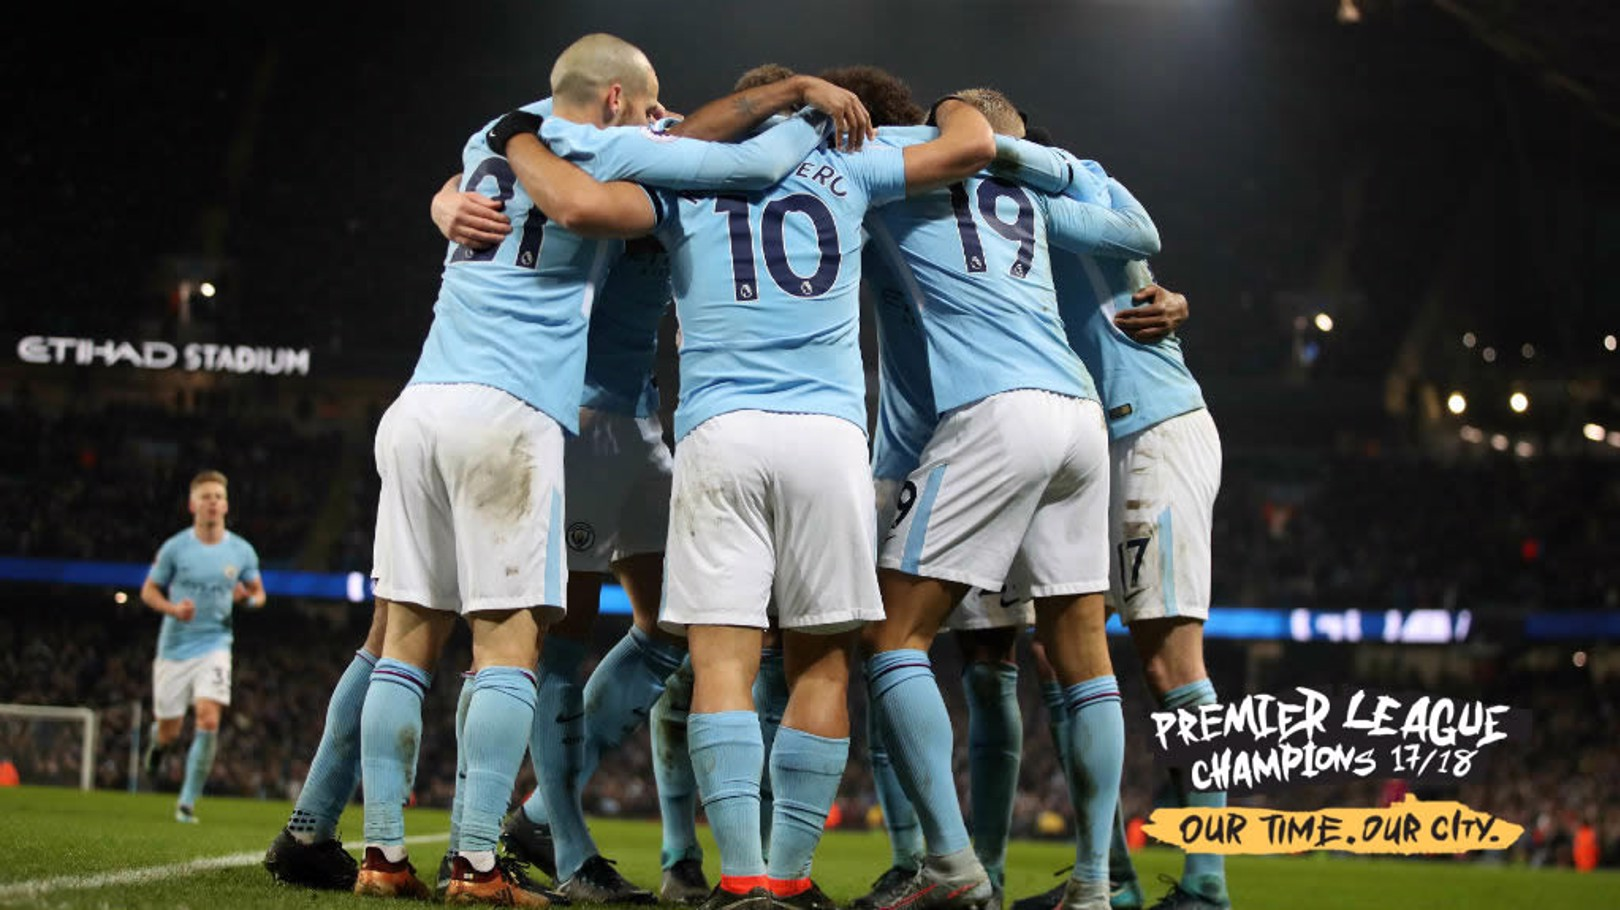 CHAMPIONS: Manchester City